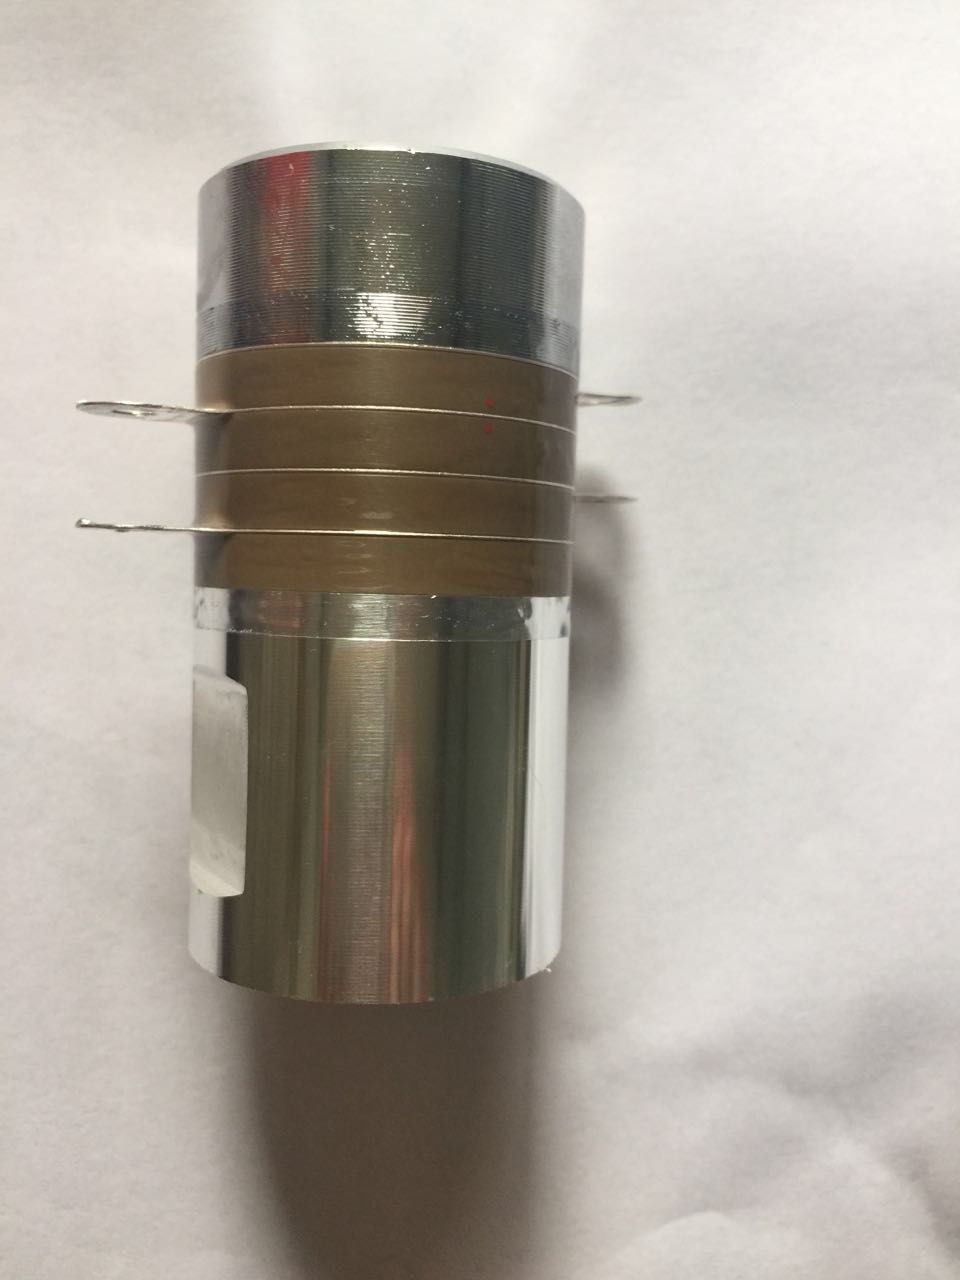 28kkhz/600W ultrasonic welding transducer UCE-UWT28600 P8,high power ultrasonic transducer 1800w 15khz ultrasonic welding transducer horn ultra w1800tt 1800w high power ultrasonic transducer